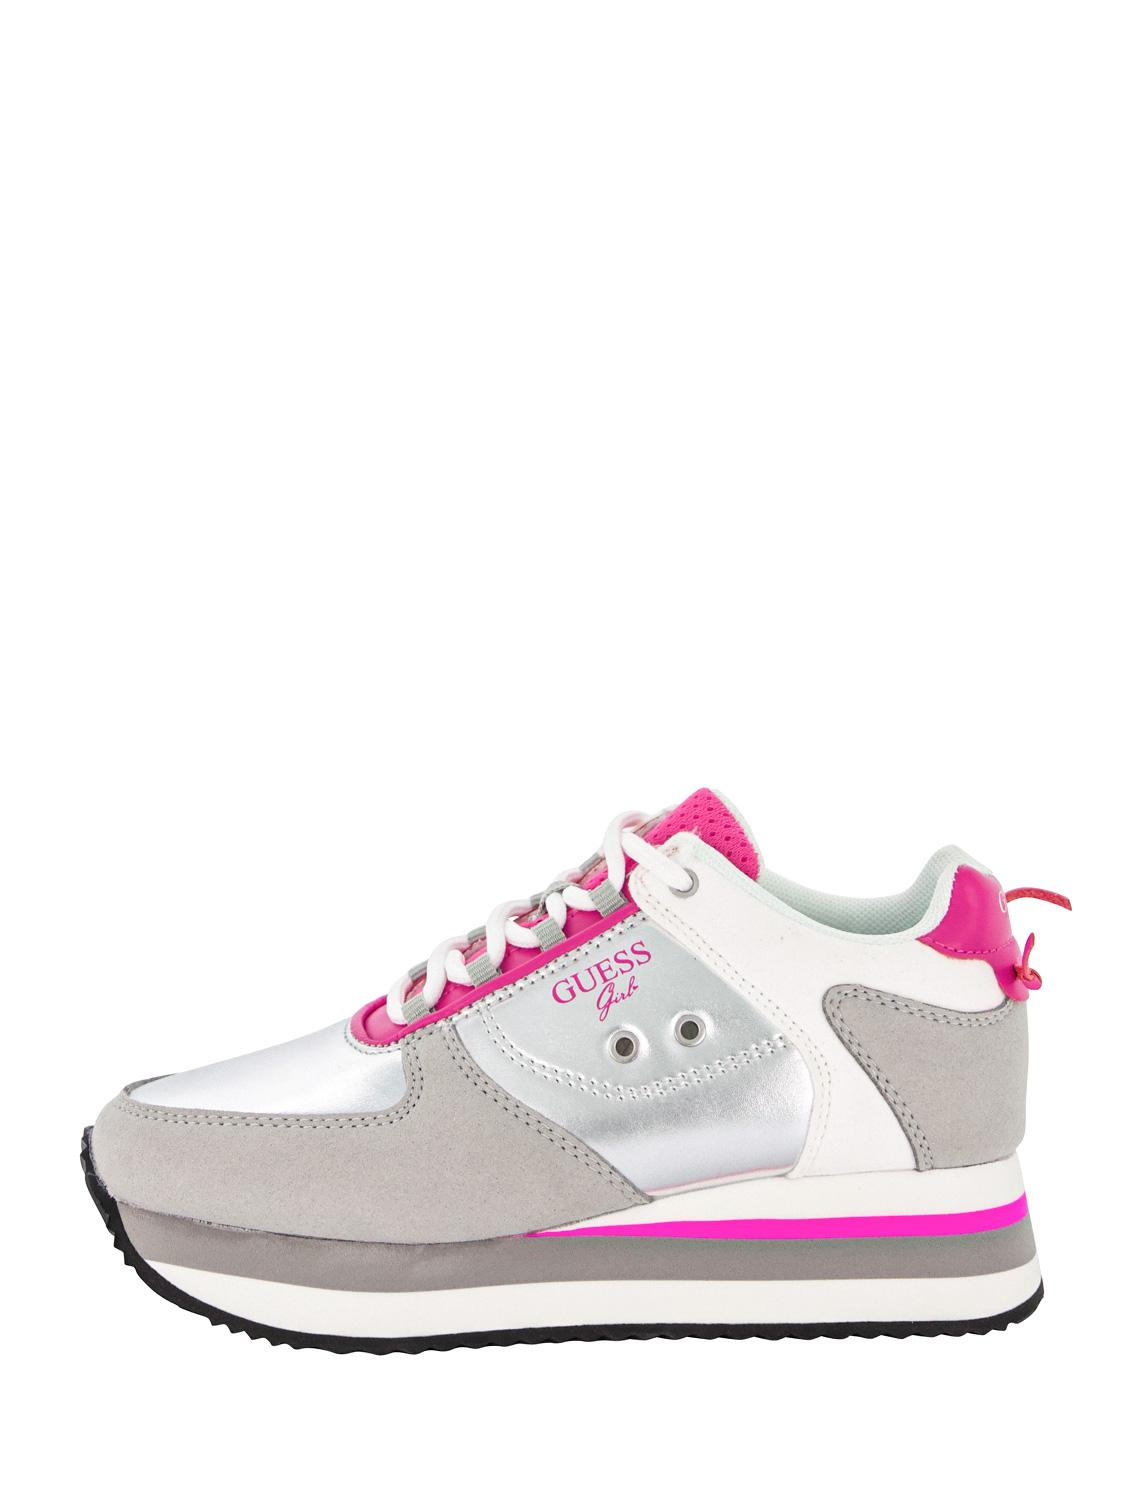 GUESS sneakers LILY silver for girls